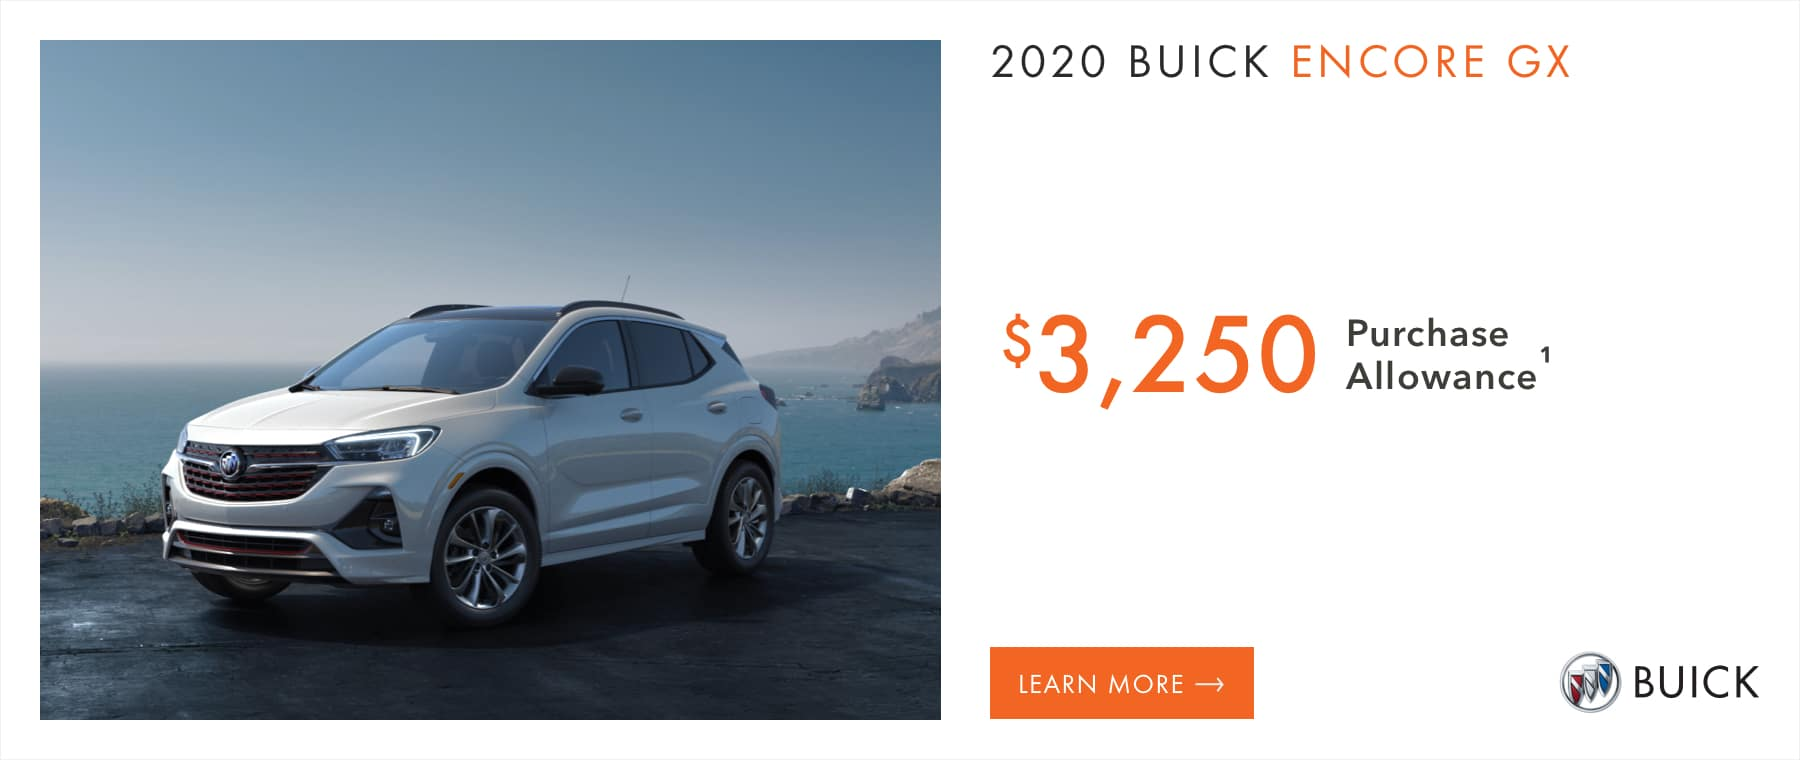 2020 Buick Encore GX Models - $3,250 Purchase Allowance